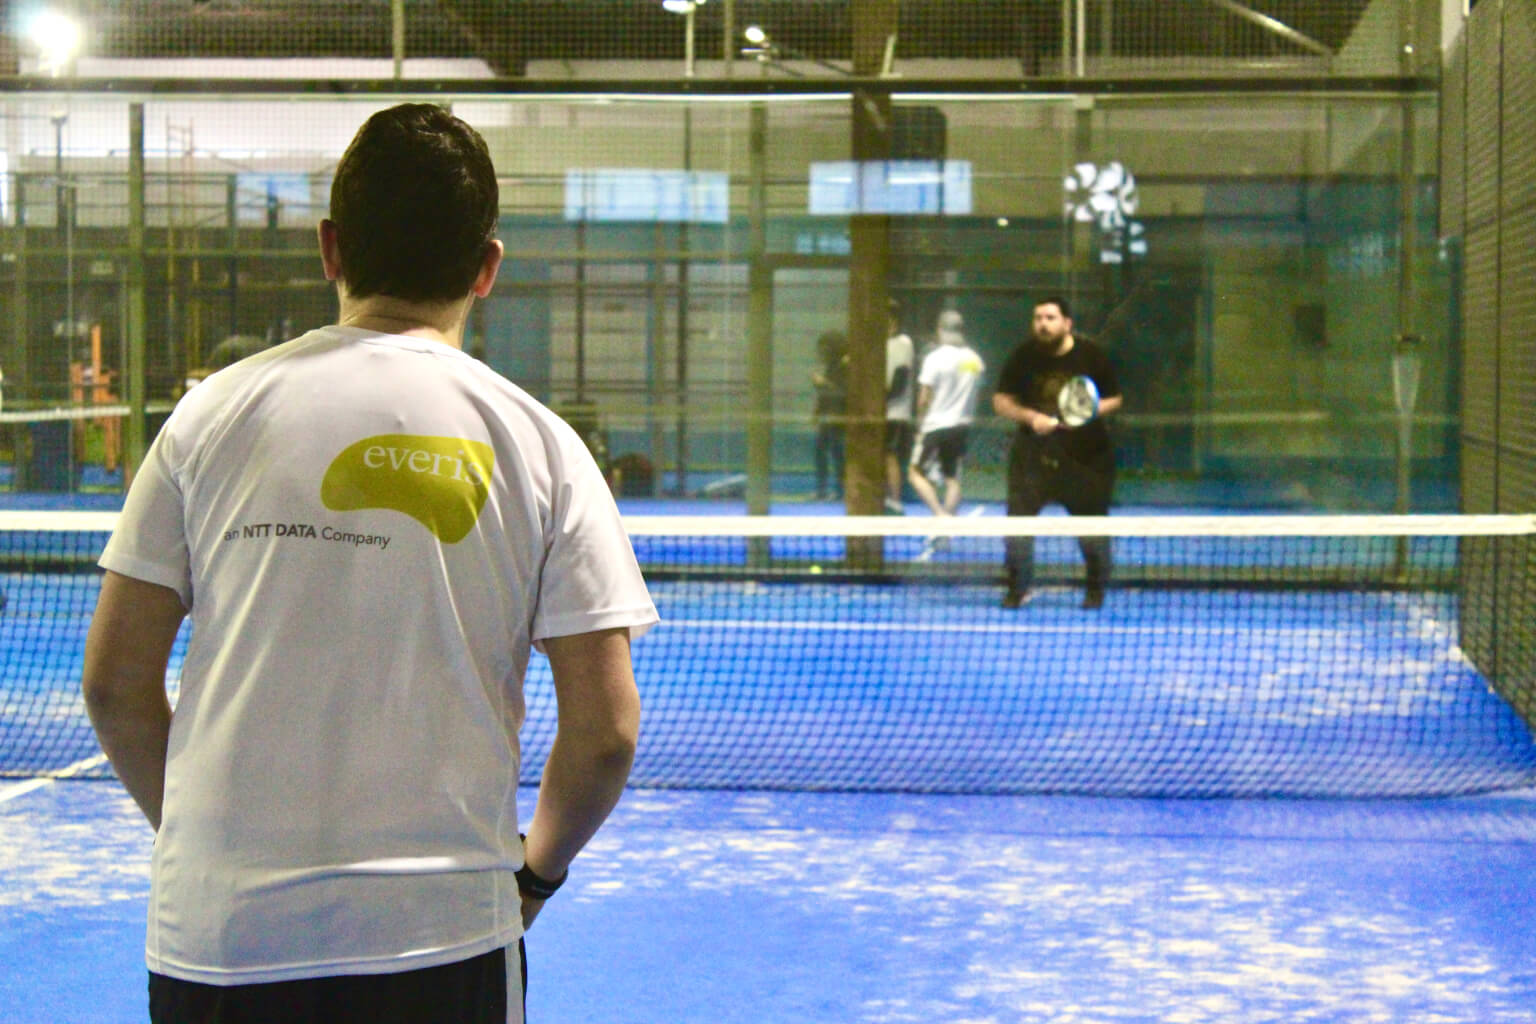 I Torneo Nacional de padel Everis en The Players